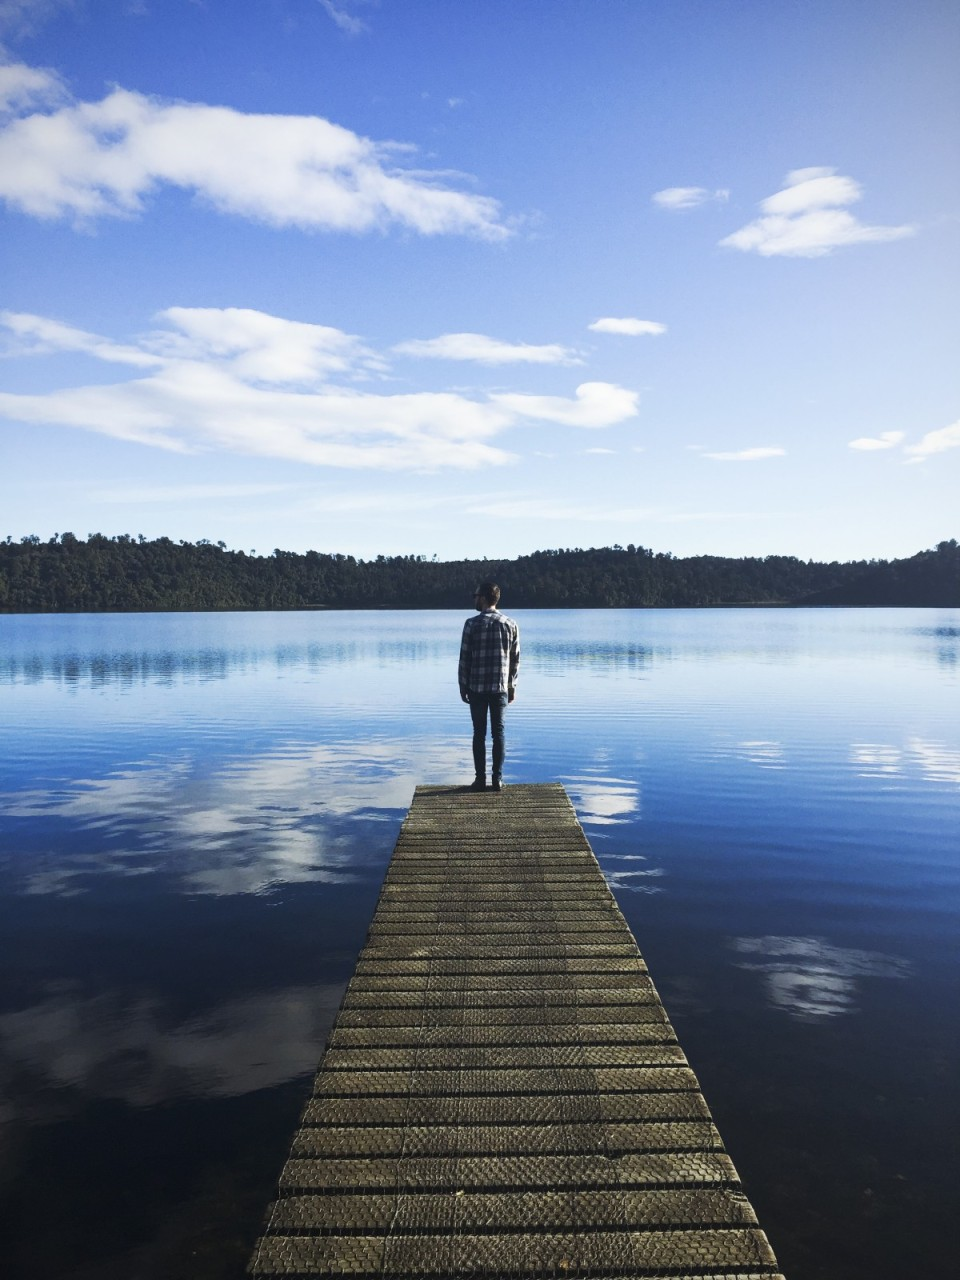 peaceful man at end of pier via pxhere - public domain